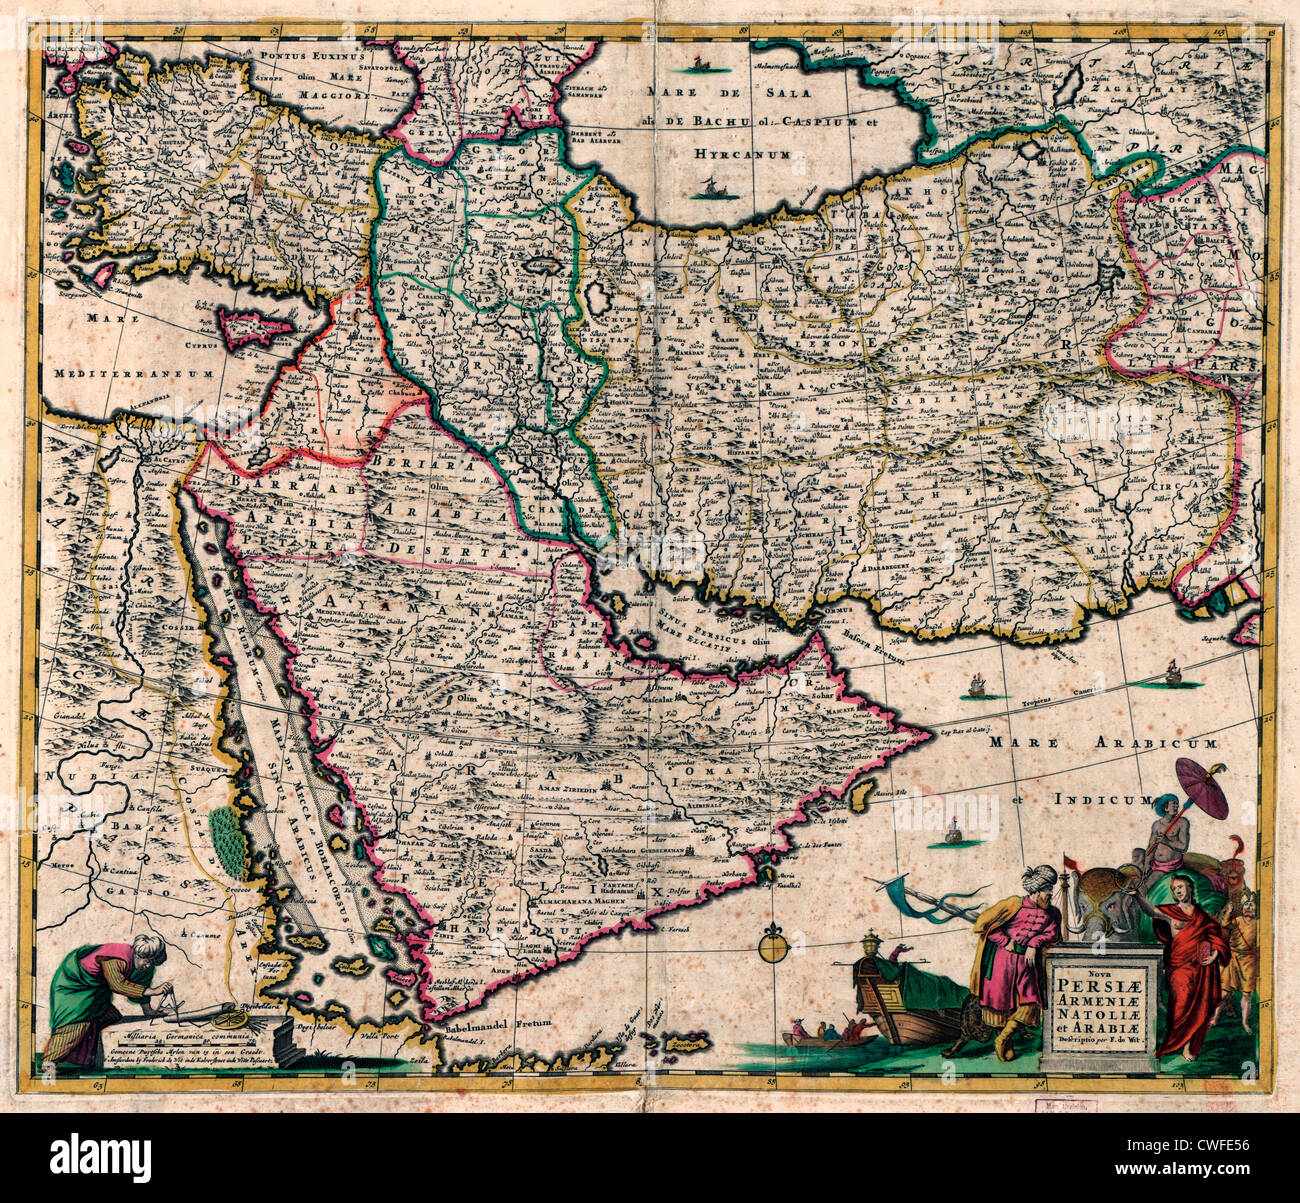 Map of middle east saudi arabia turkey egypt persia circa 1666 map of middle east saudi arabia turkey egypt persia circa 1666 gumiabroncs Choice Image